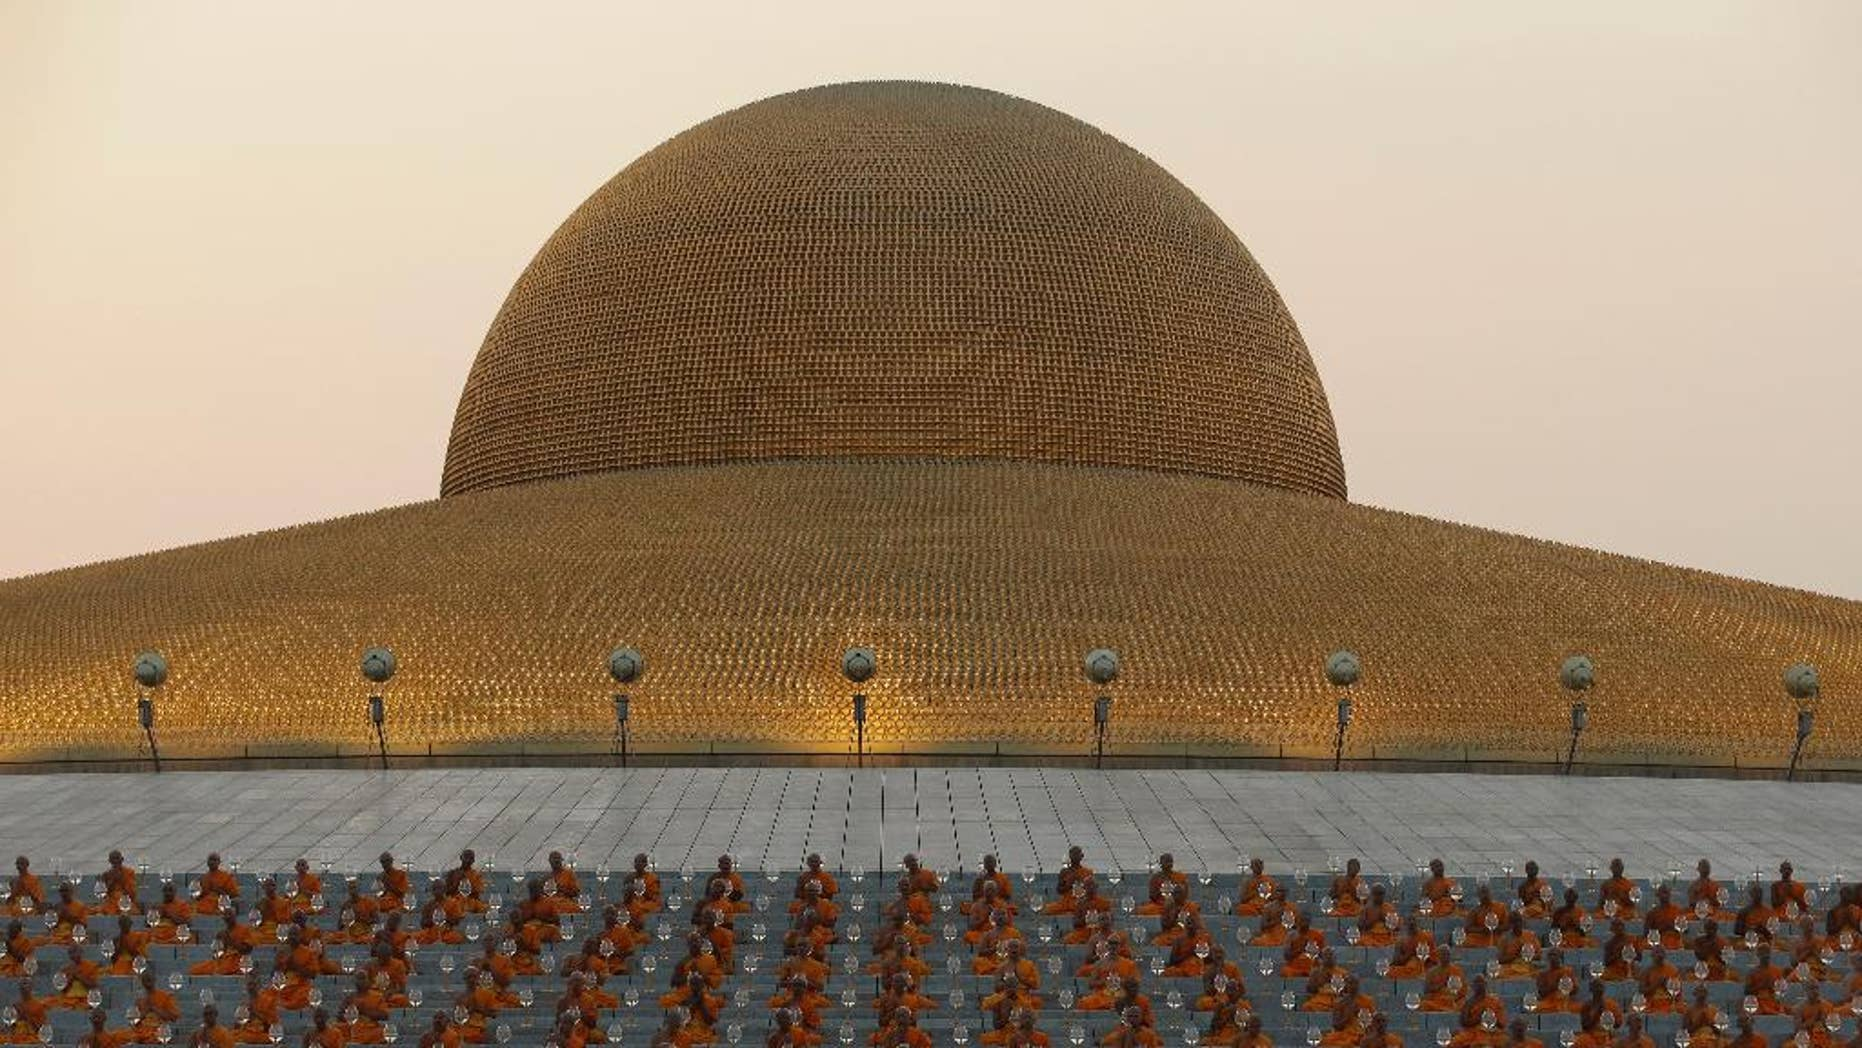 In this Feb. 22, 2016 photo, Thai Buddhist monks pray and gather at Wat Dhammakaya temple to participate in Makha Bucha Day ceremonies in Pathum Thani, Thailand, The Office of the Attorney-General announced Wednesday, Nov. 23, 2016 its decision to bring to court Phra Dhammachayo, the abbot of Wat Dhammakaya, a monastery north of Bangkok. He and four other persons will be charged with conspiracy to launder money, money laundering and receiving stolen property. (AP Photo/Sakchai Lalit)